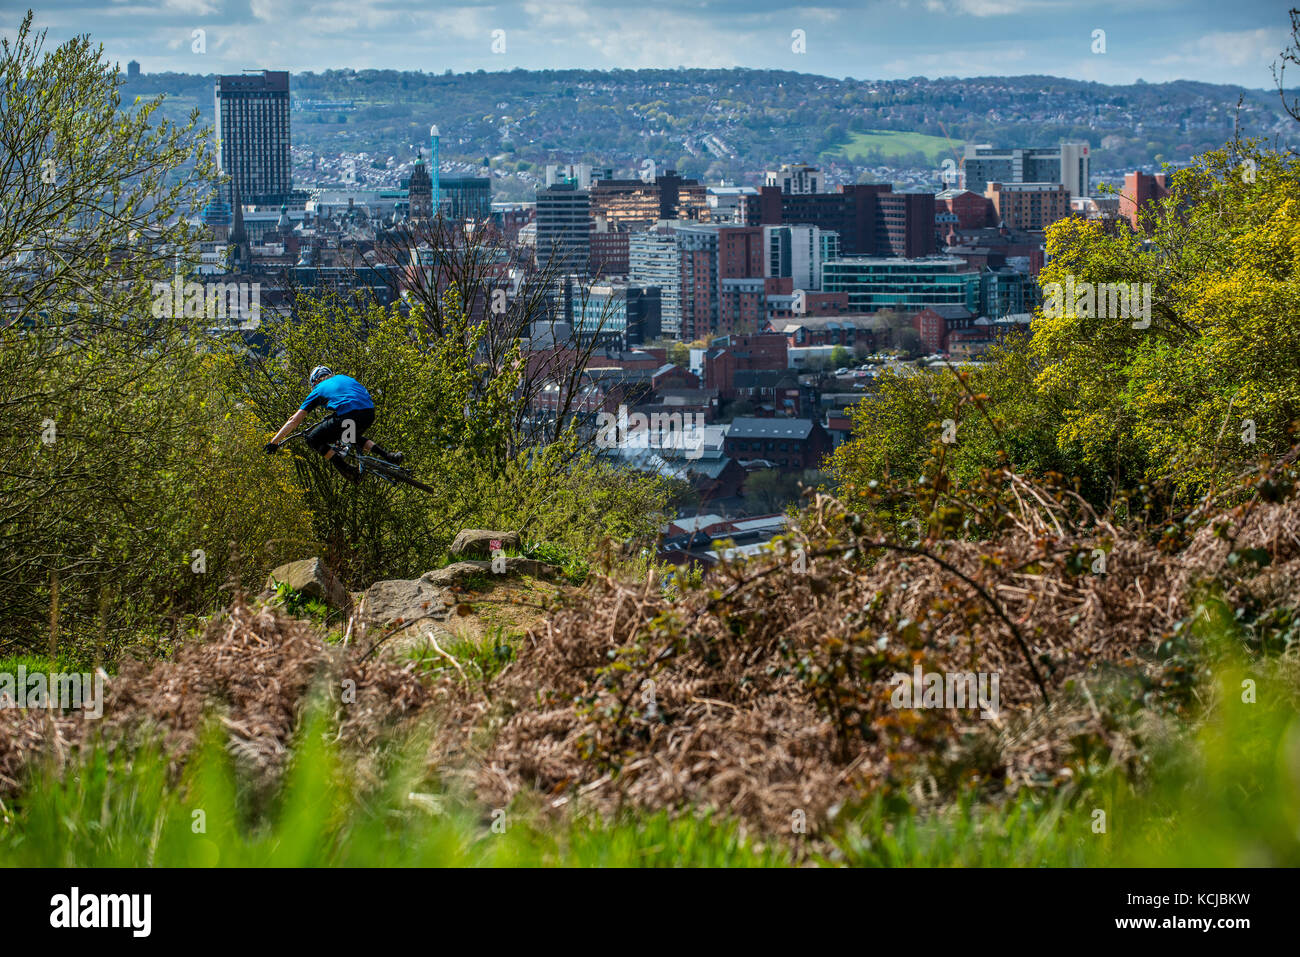 A mountain biker jumps in the air as he rides the trails at Parkwood Springs overlooking Sheffield city centre. - Stock Image